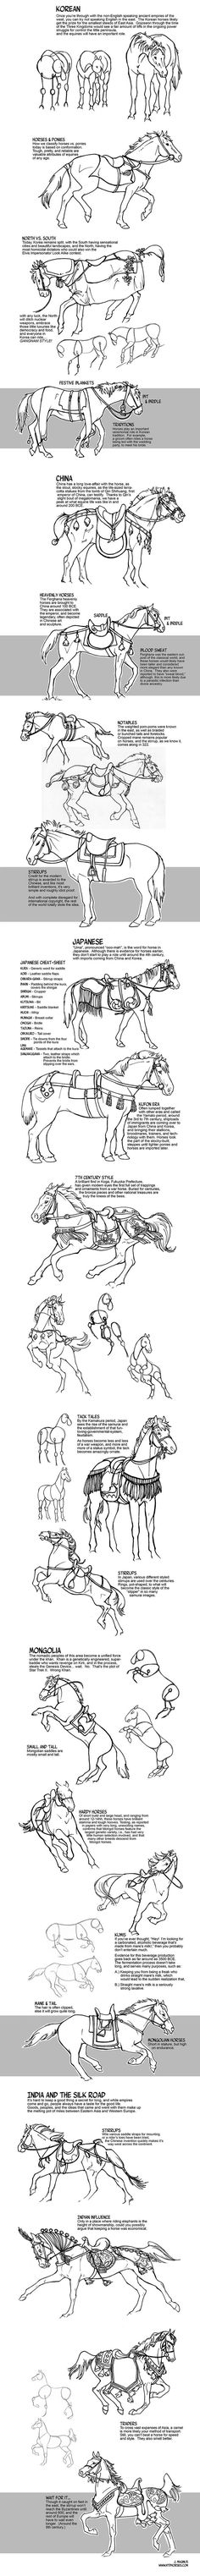 Historic Asian Horses by sketcherjak.devia... on @deviantART